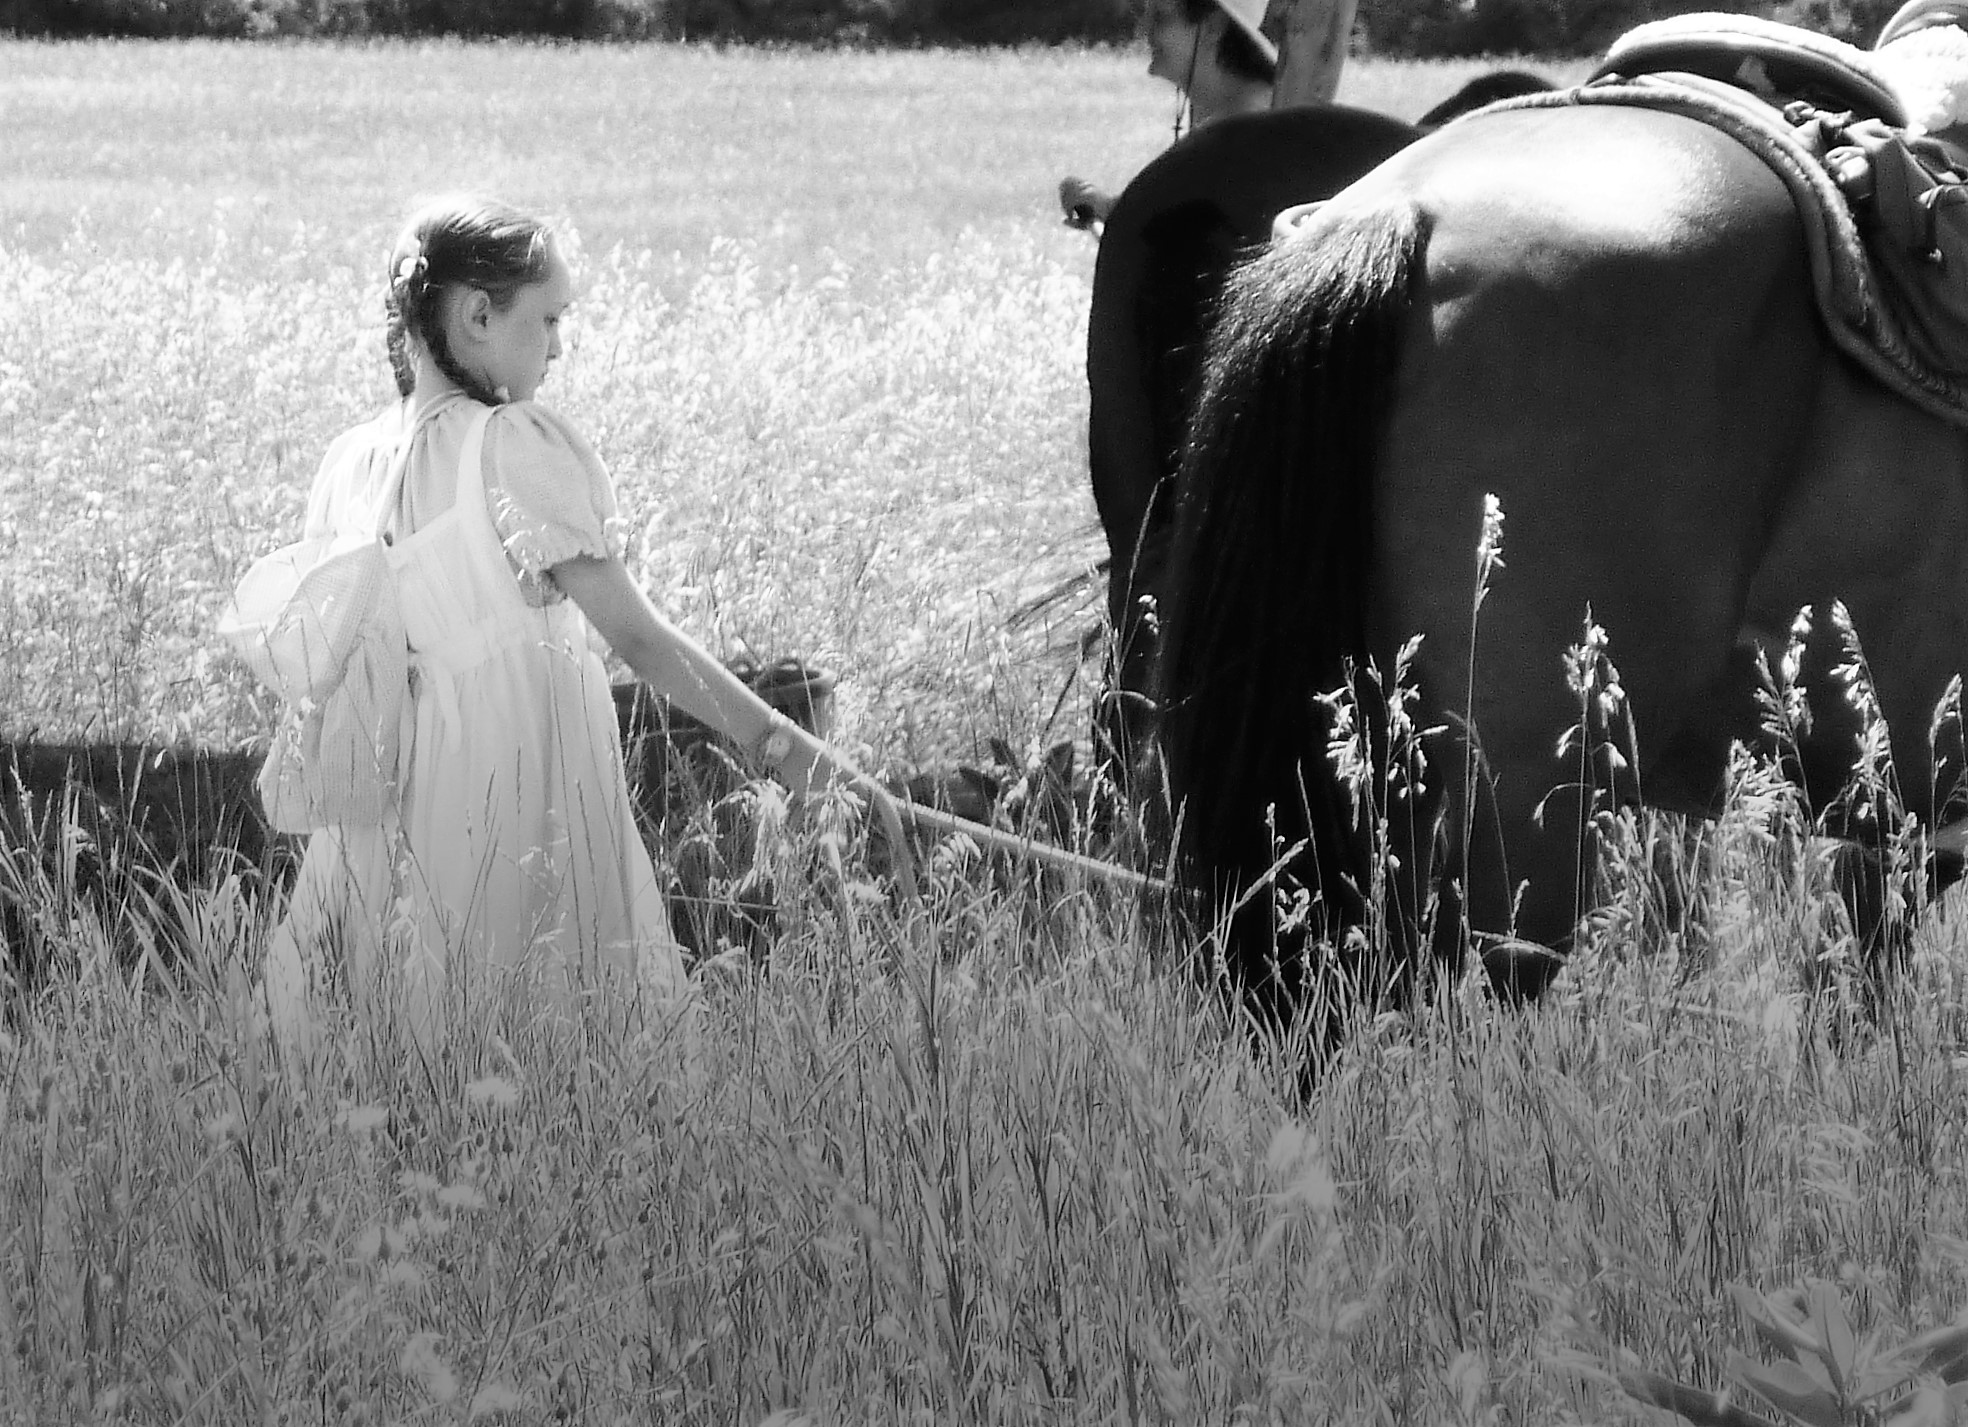 Young girl tends to horses in field